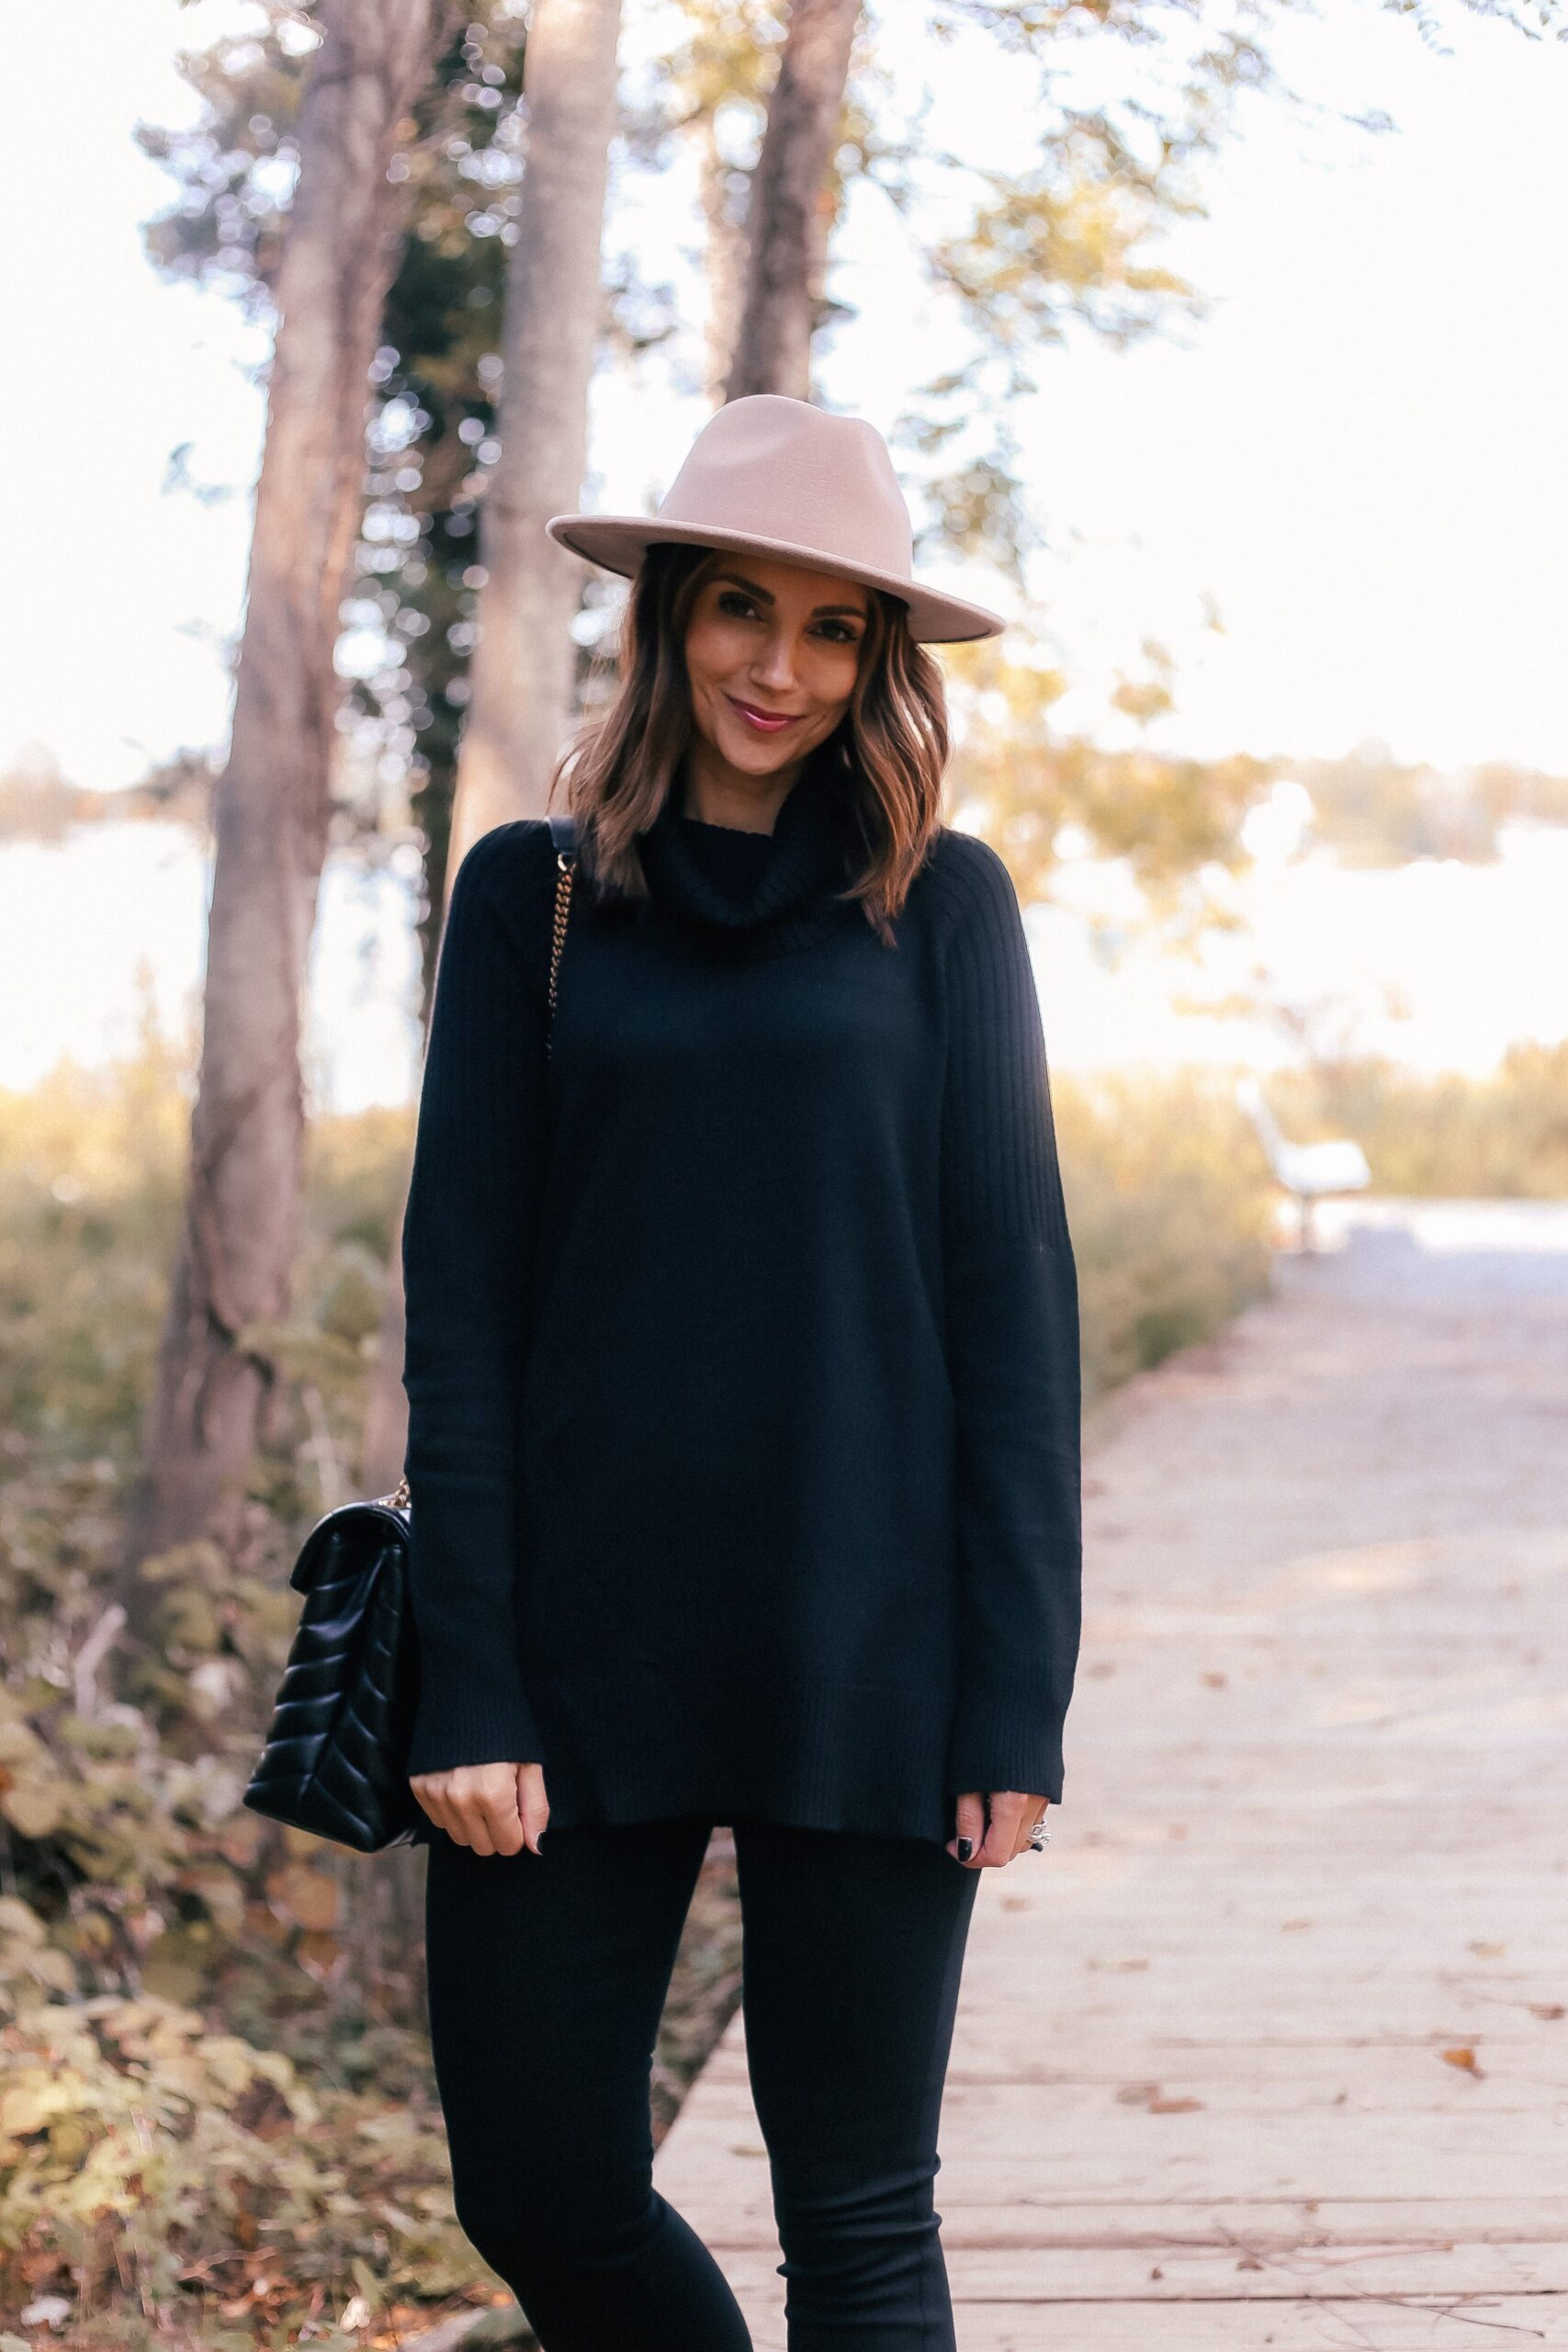 walmart black sweater,walmart hat, fall affordable outfit